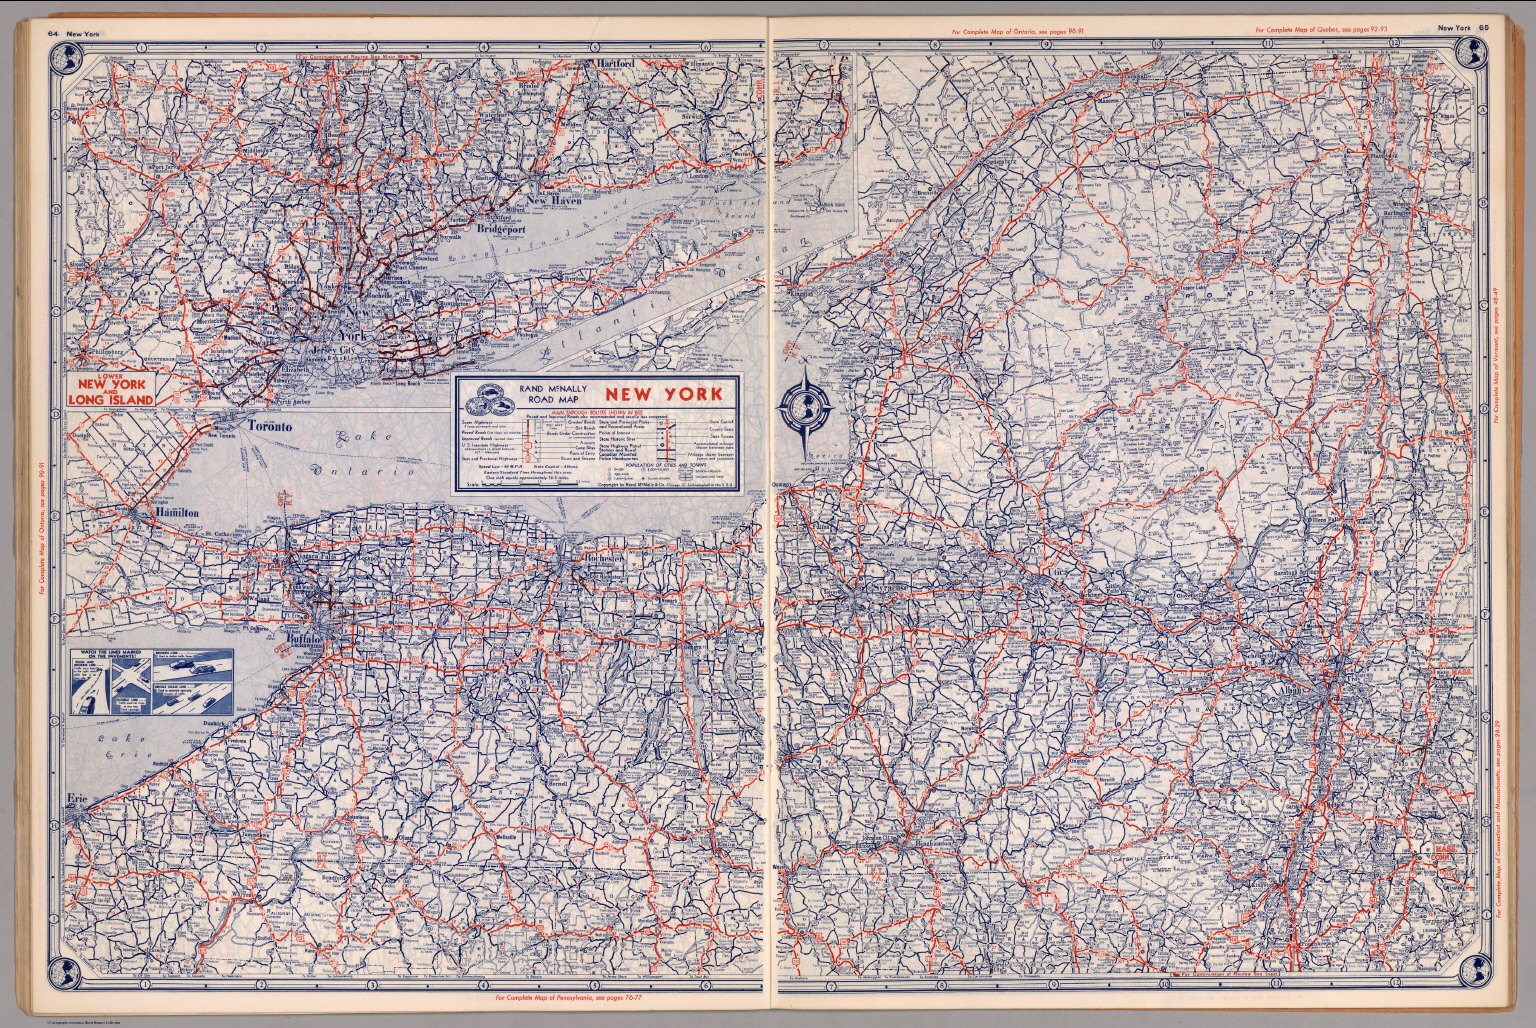 Road Map Of New York David Rumsey Historical Map Collection - Nyc map road